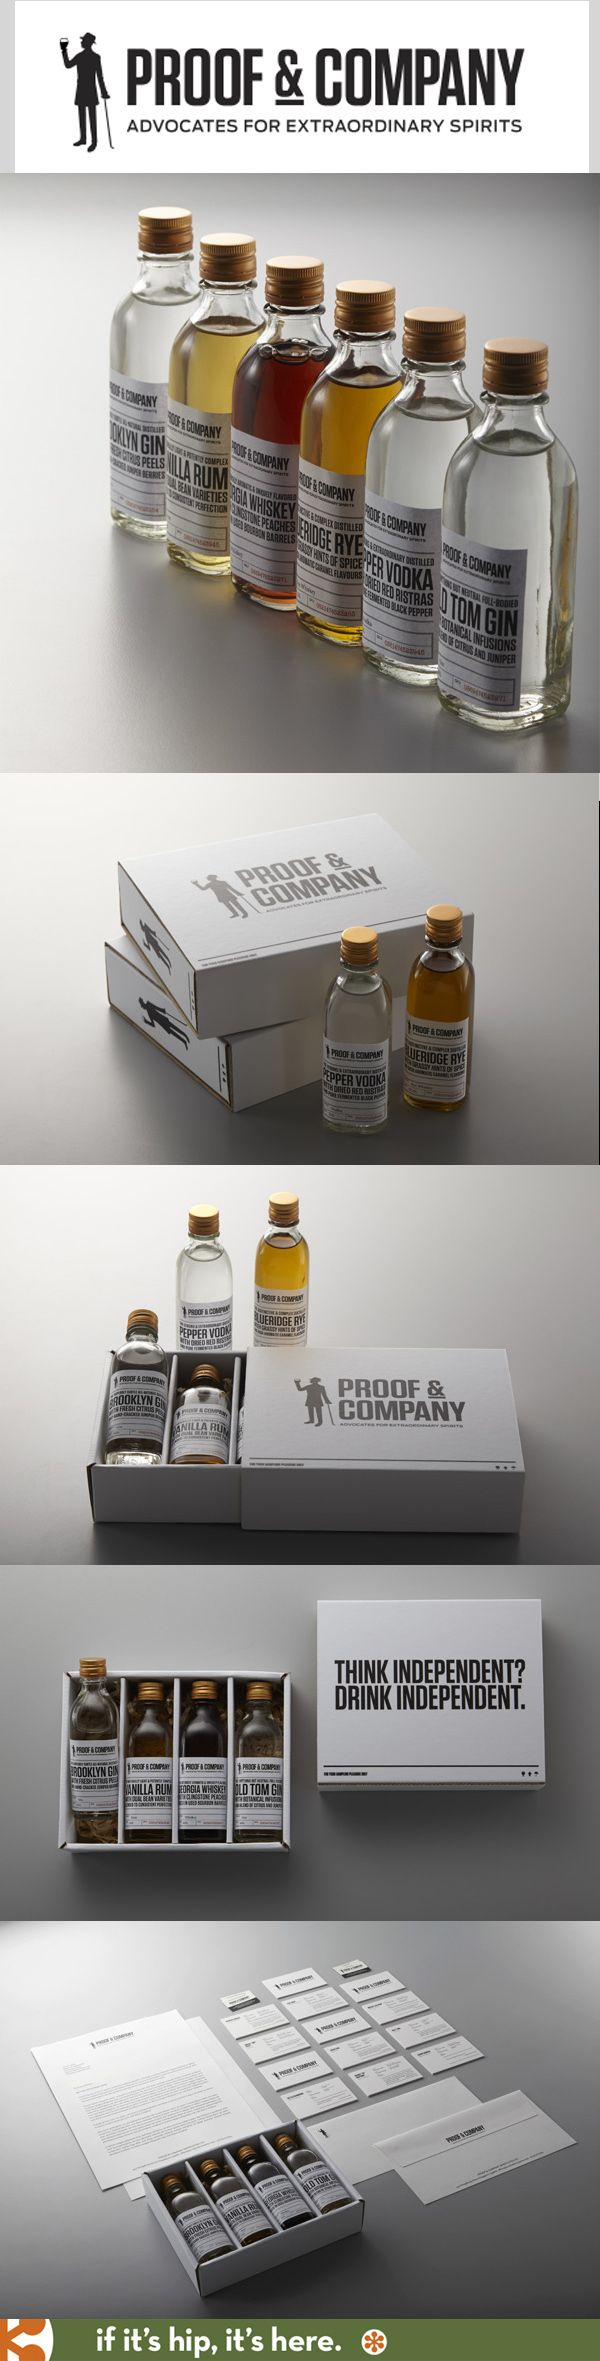 Proof & Co.  has very nicely packaged small batch spirits.